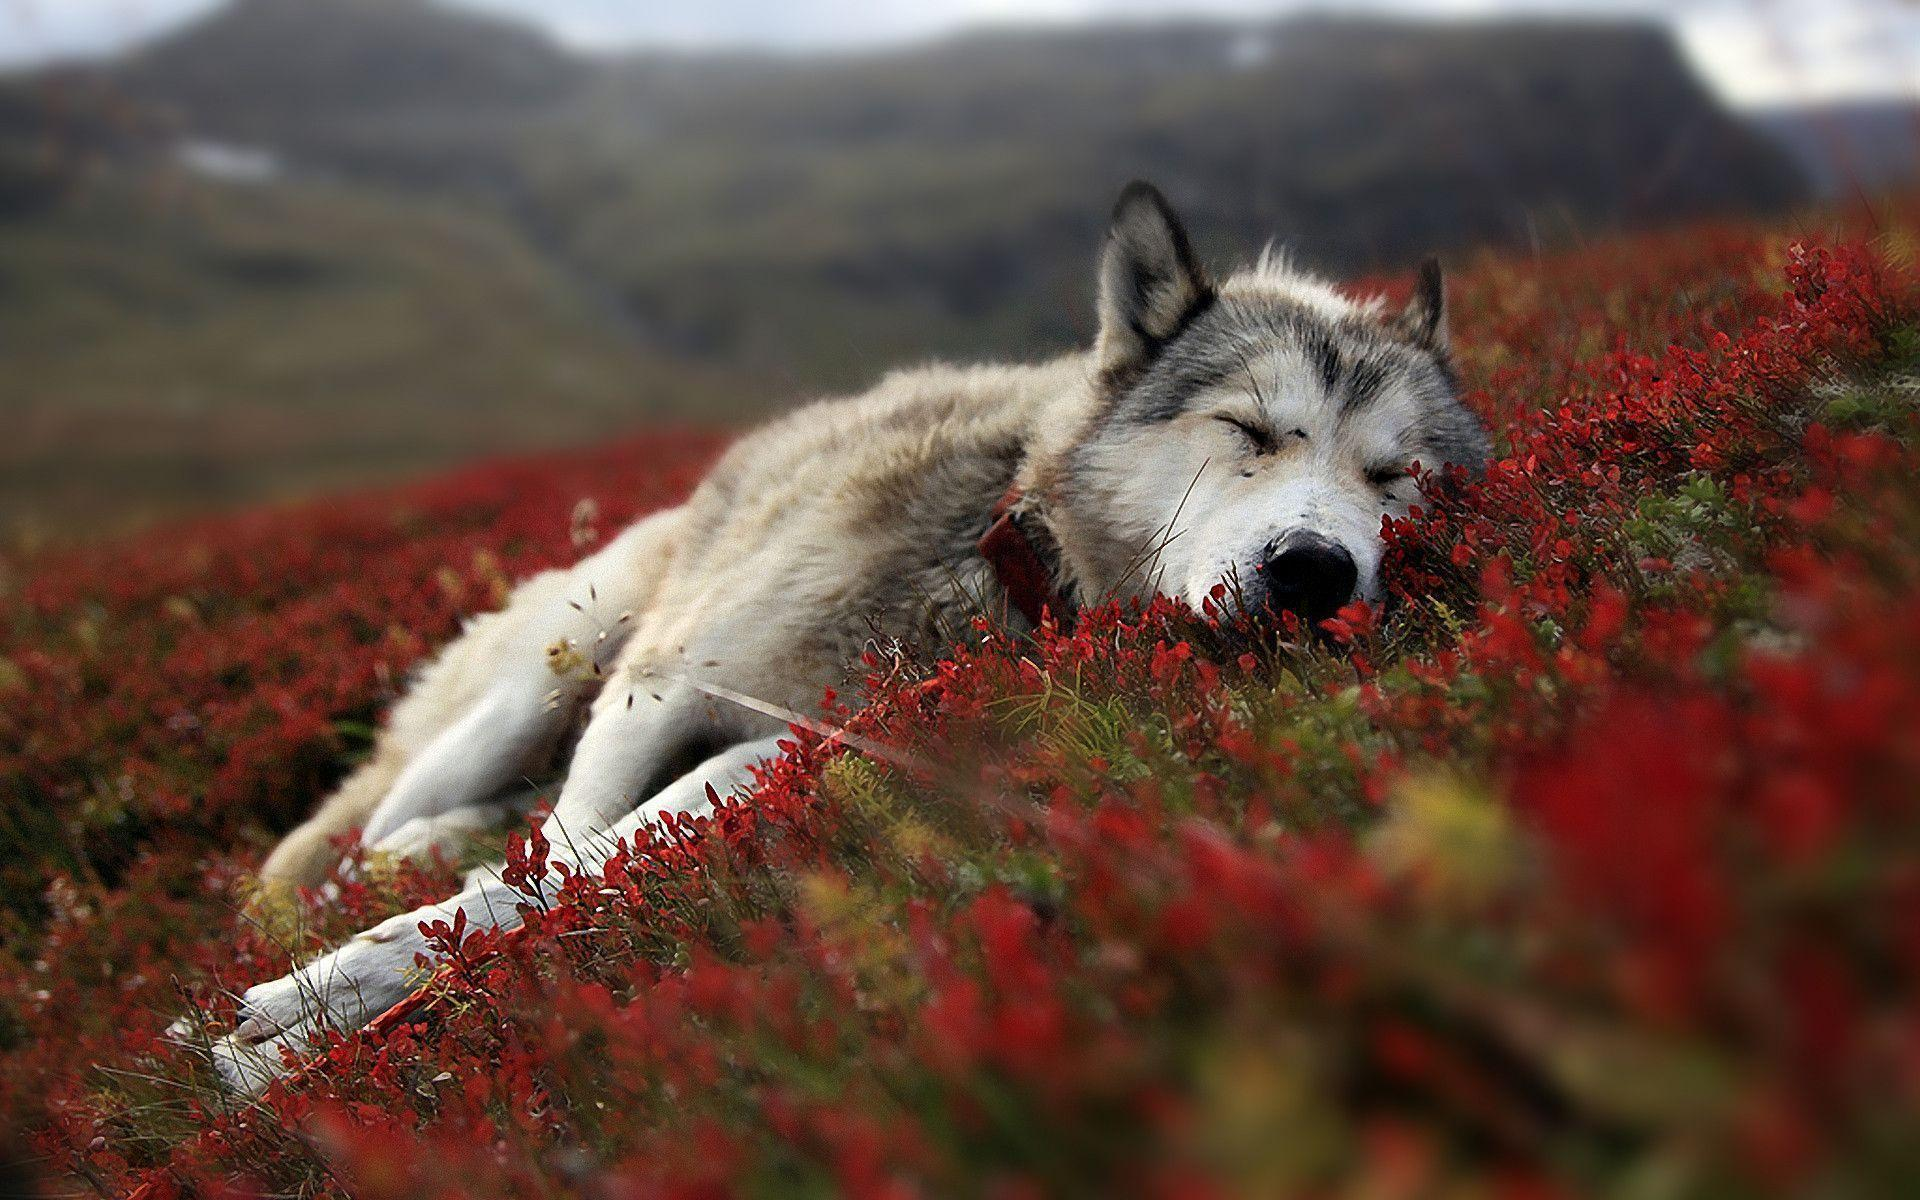 Hd wallpaper wolf - Images For Lone Wolf Wallpaper